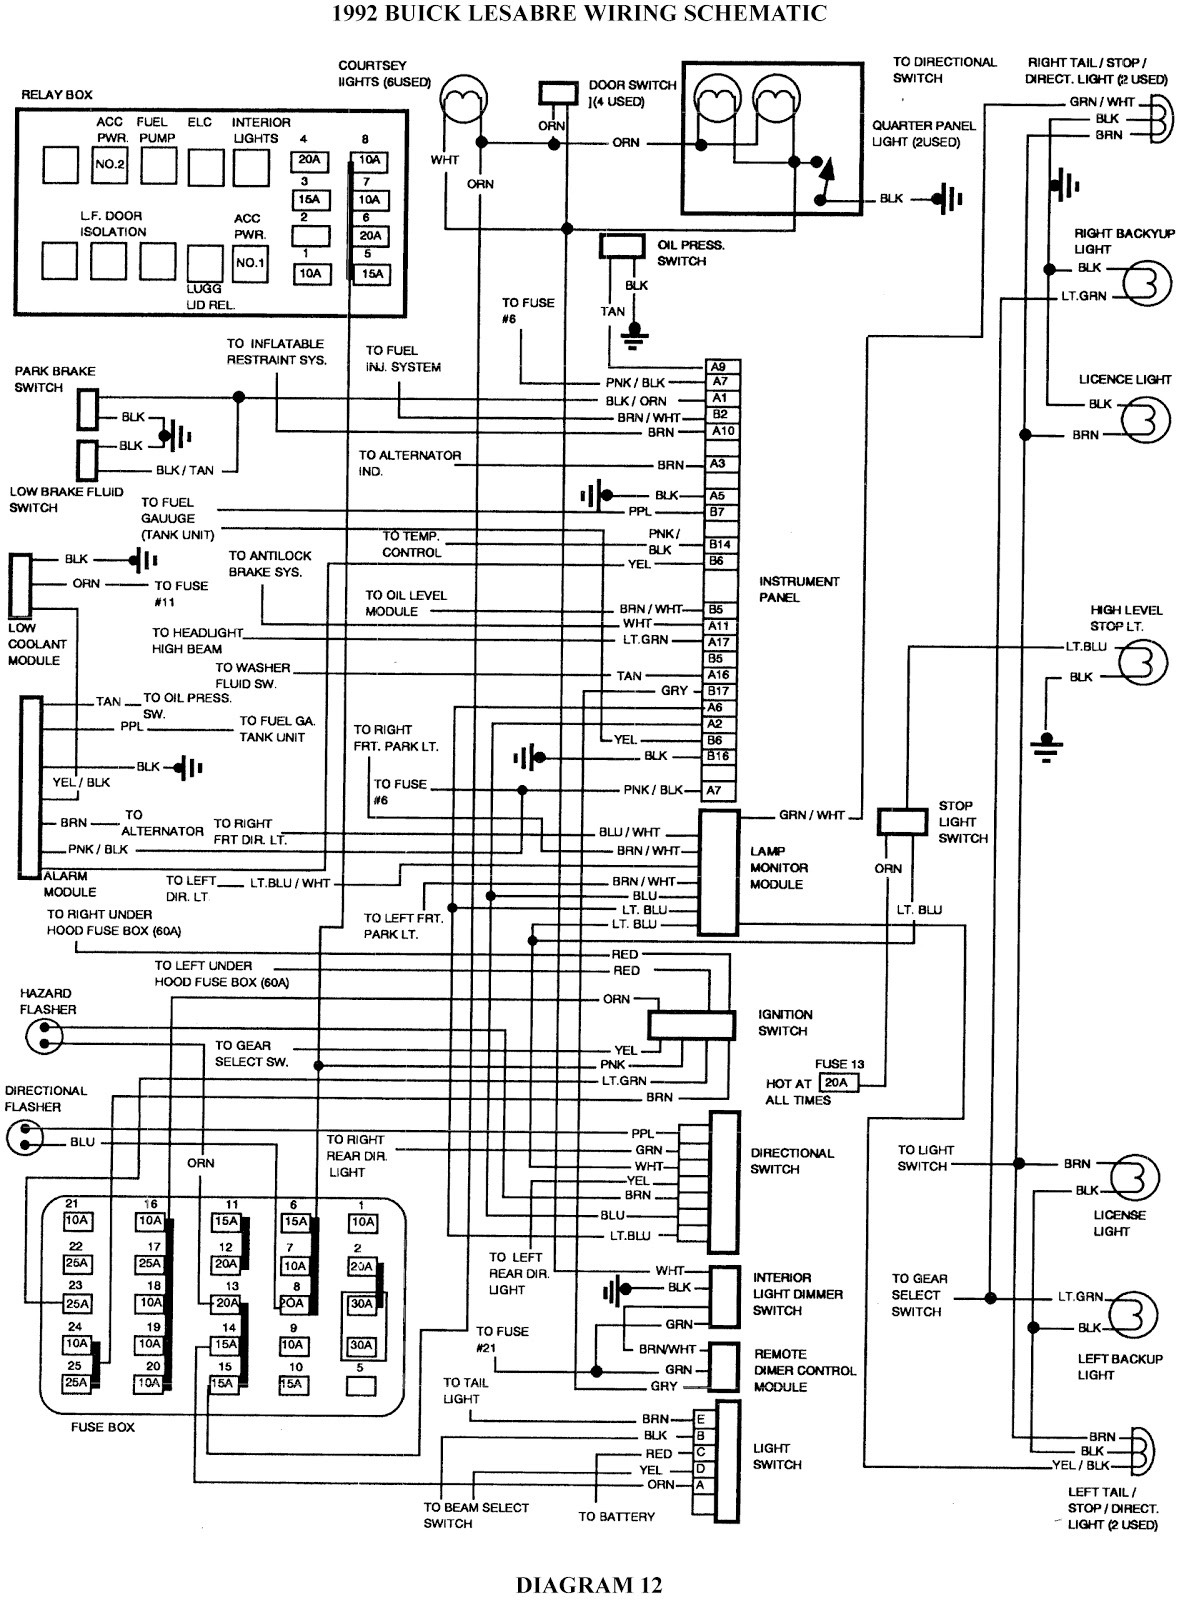 1992 Buick LeSabre Schematic Wiring Diagrams | Schematic Wiring Diagrams Solutions